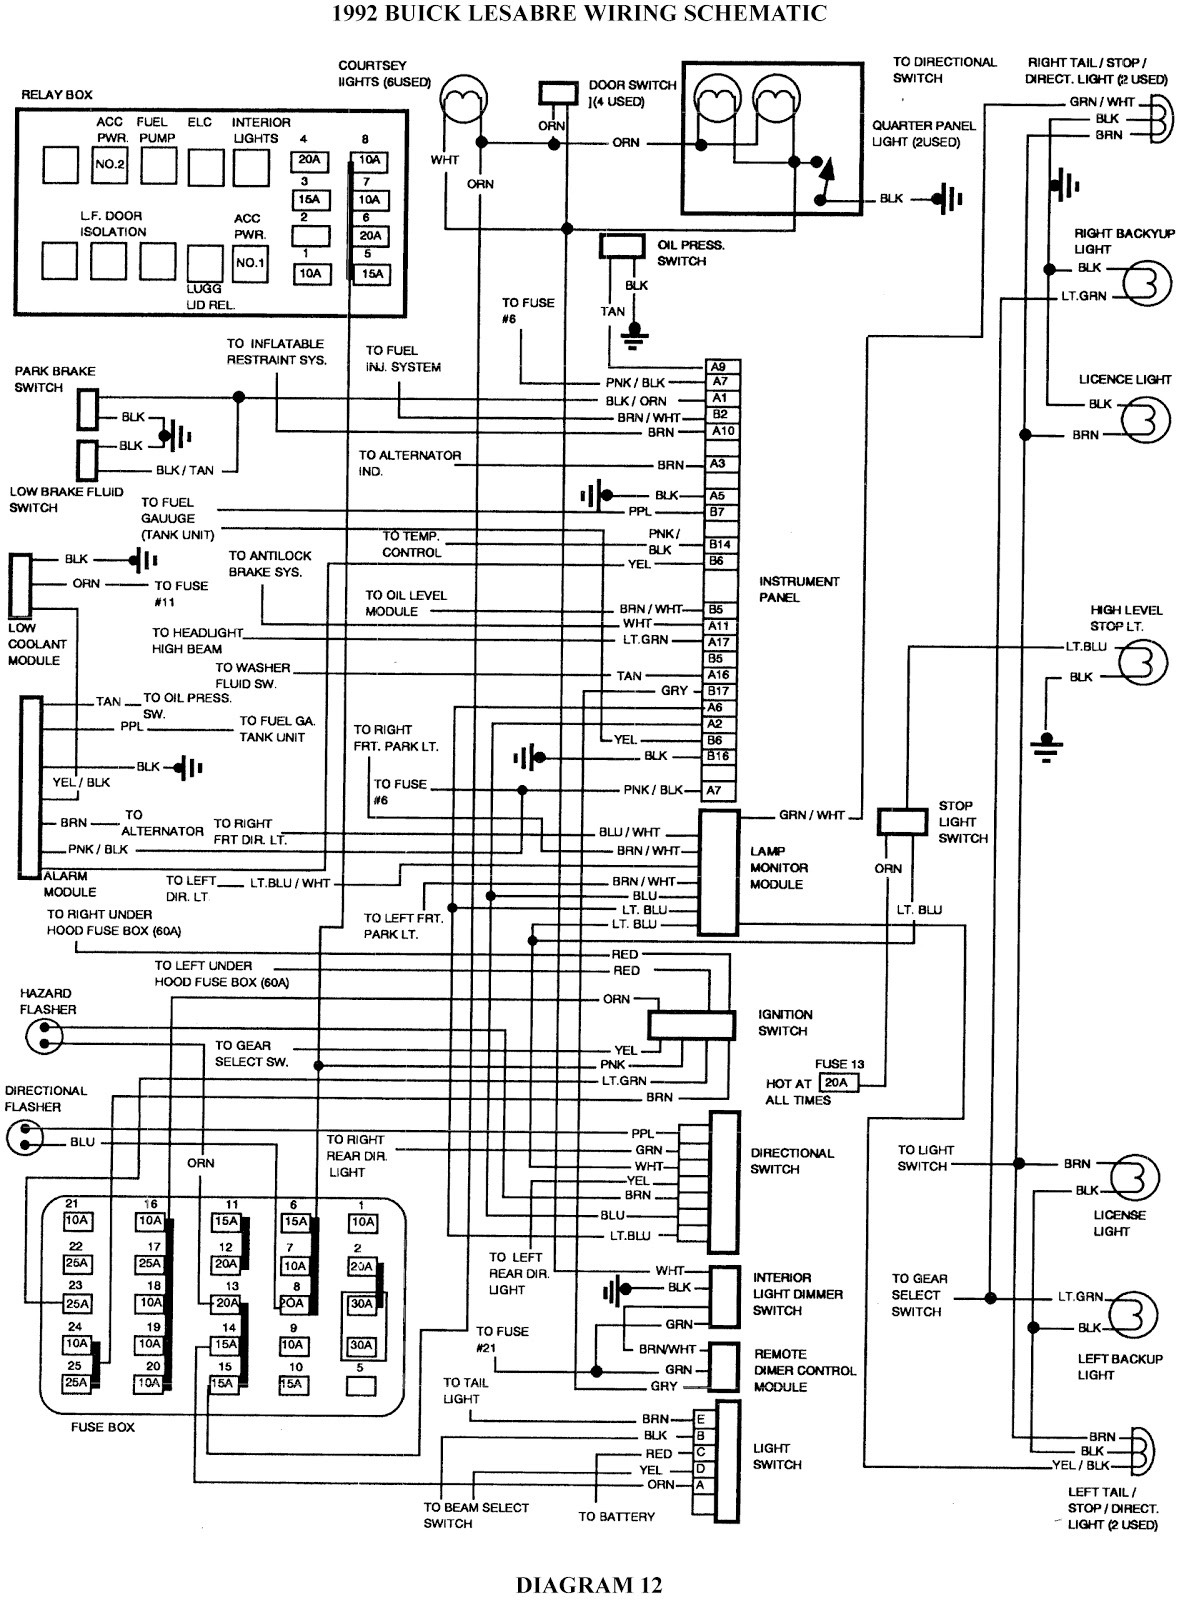 1992 Buick LeSabre Schematic Wiring Diagrams | Schematic Wiring Diagrams Solutions